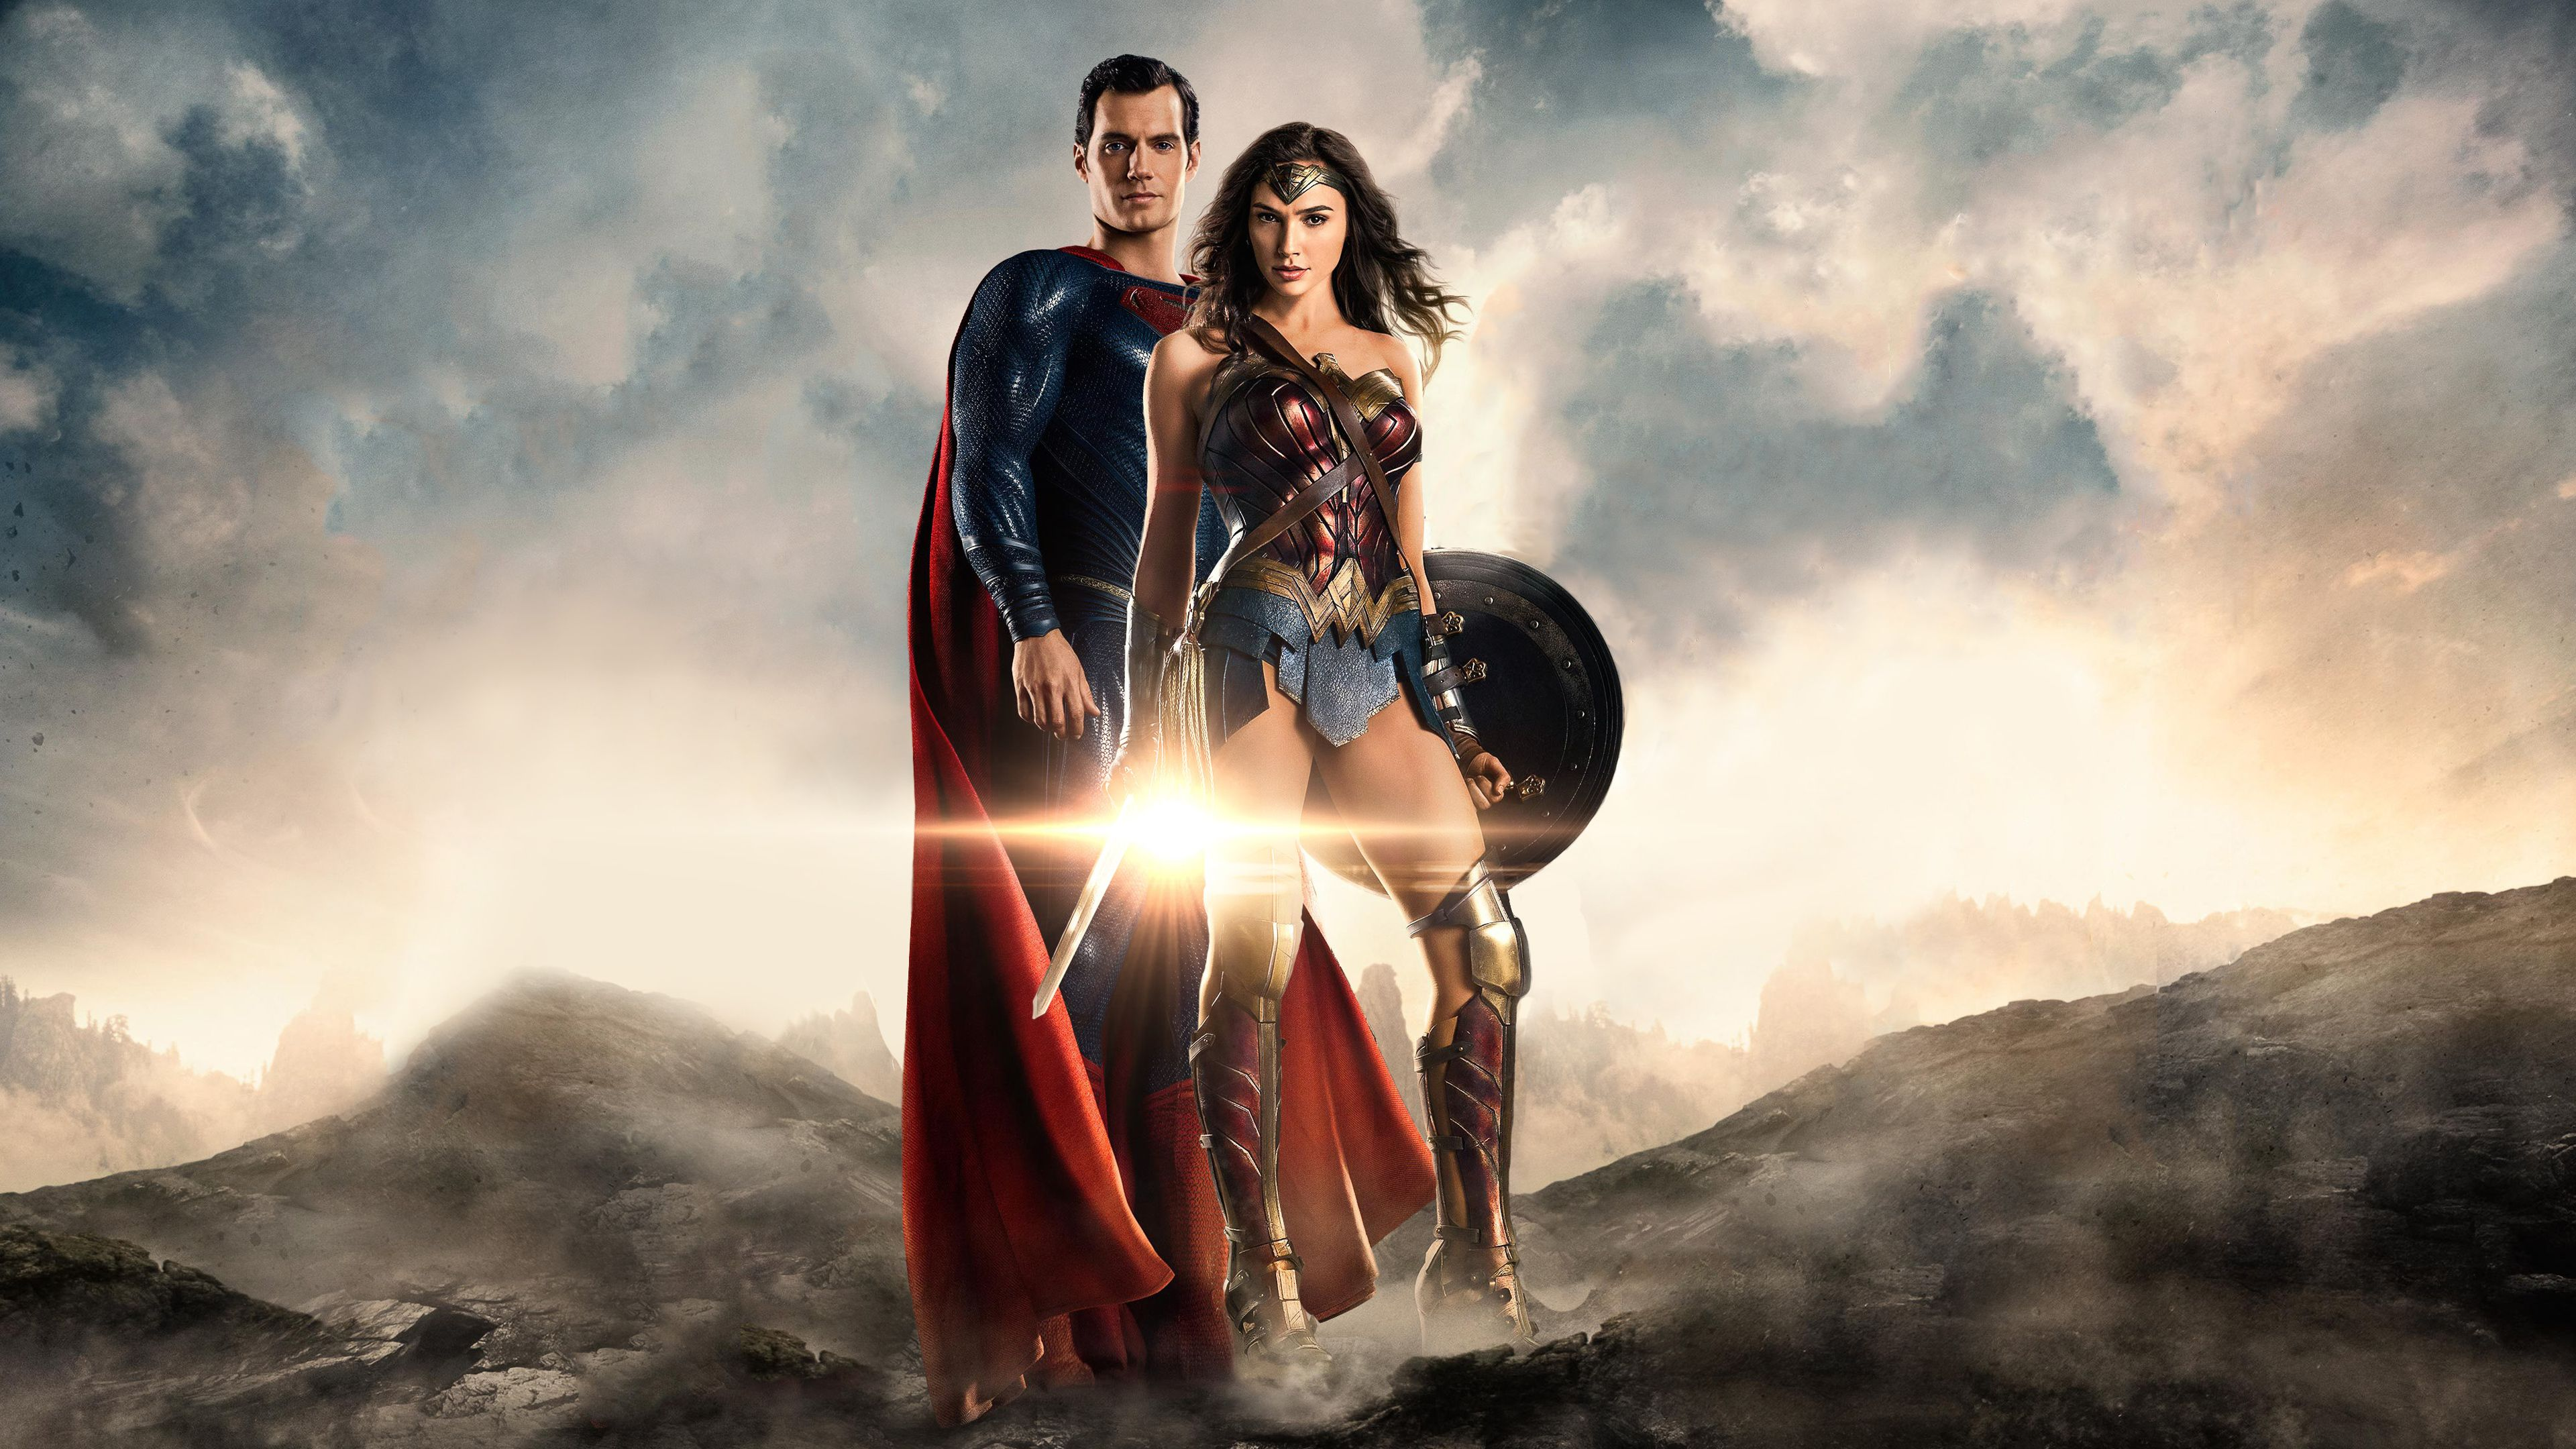 superman and wonder woman wallpapers top free superman and wonder woman backgrounds wallpaperaccess superman and wonder woman wallpapers